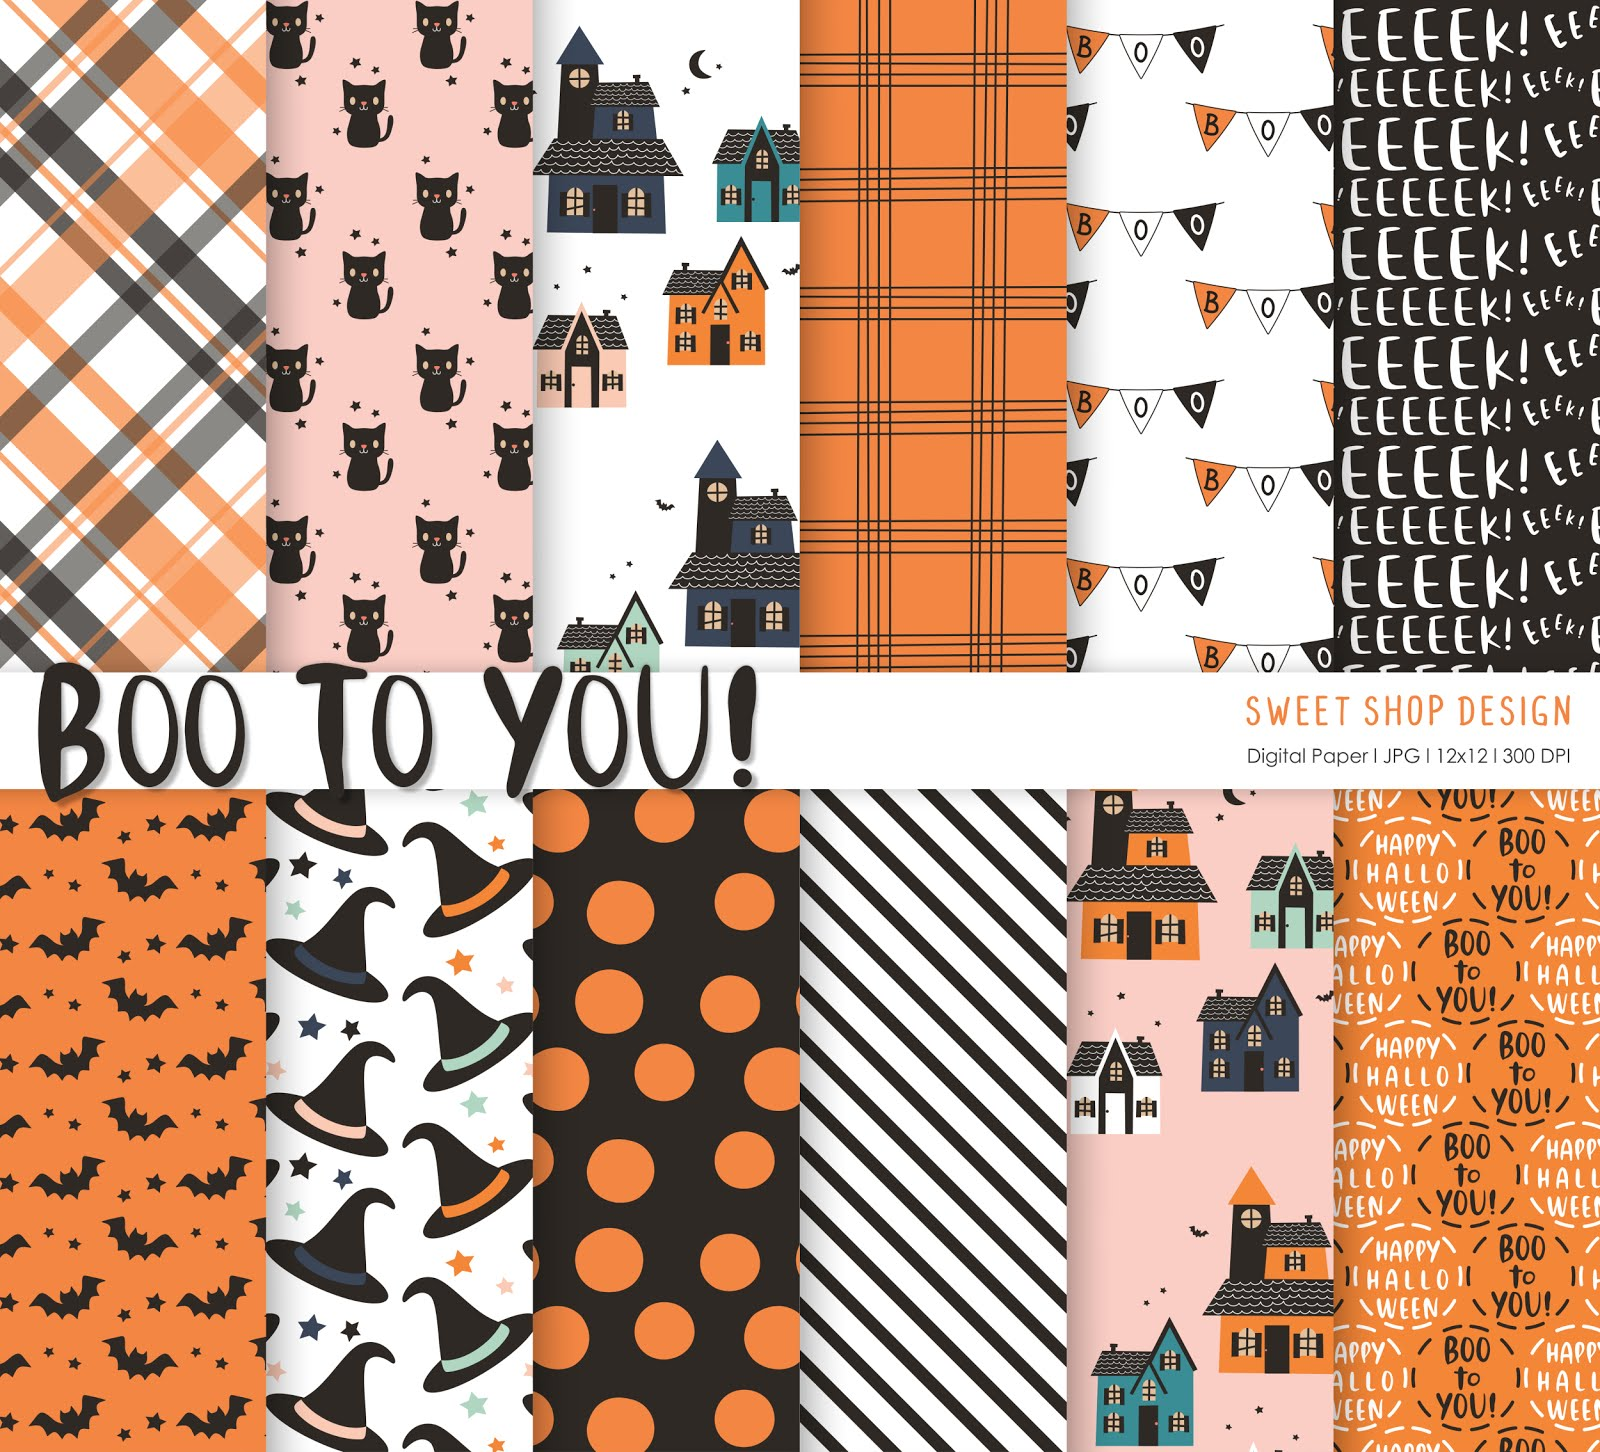 Digital Paper Boo To You